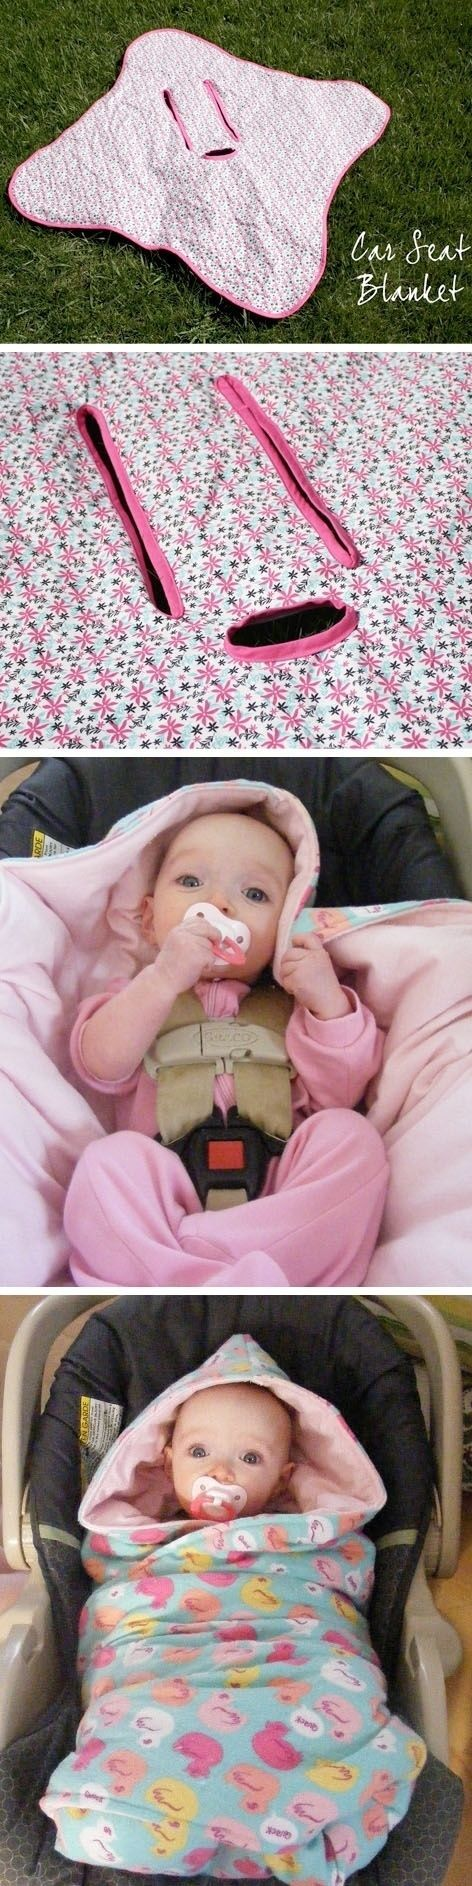 hooded car-seat blanket... this could be convenient for the cold weather